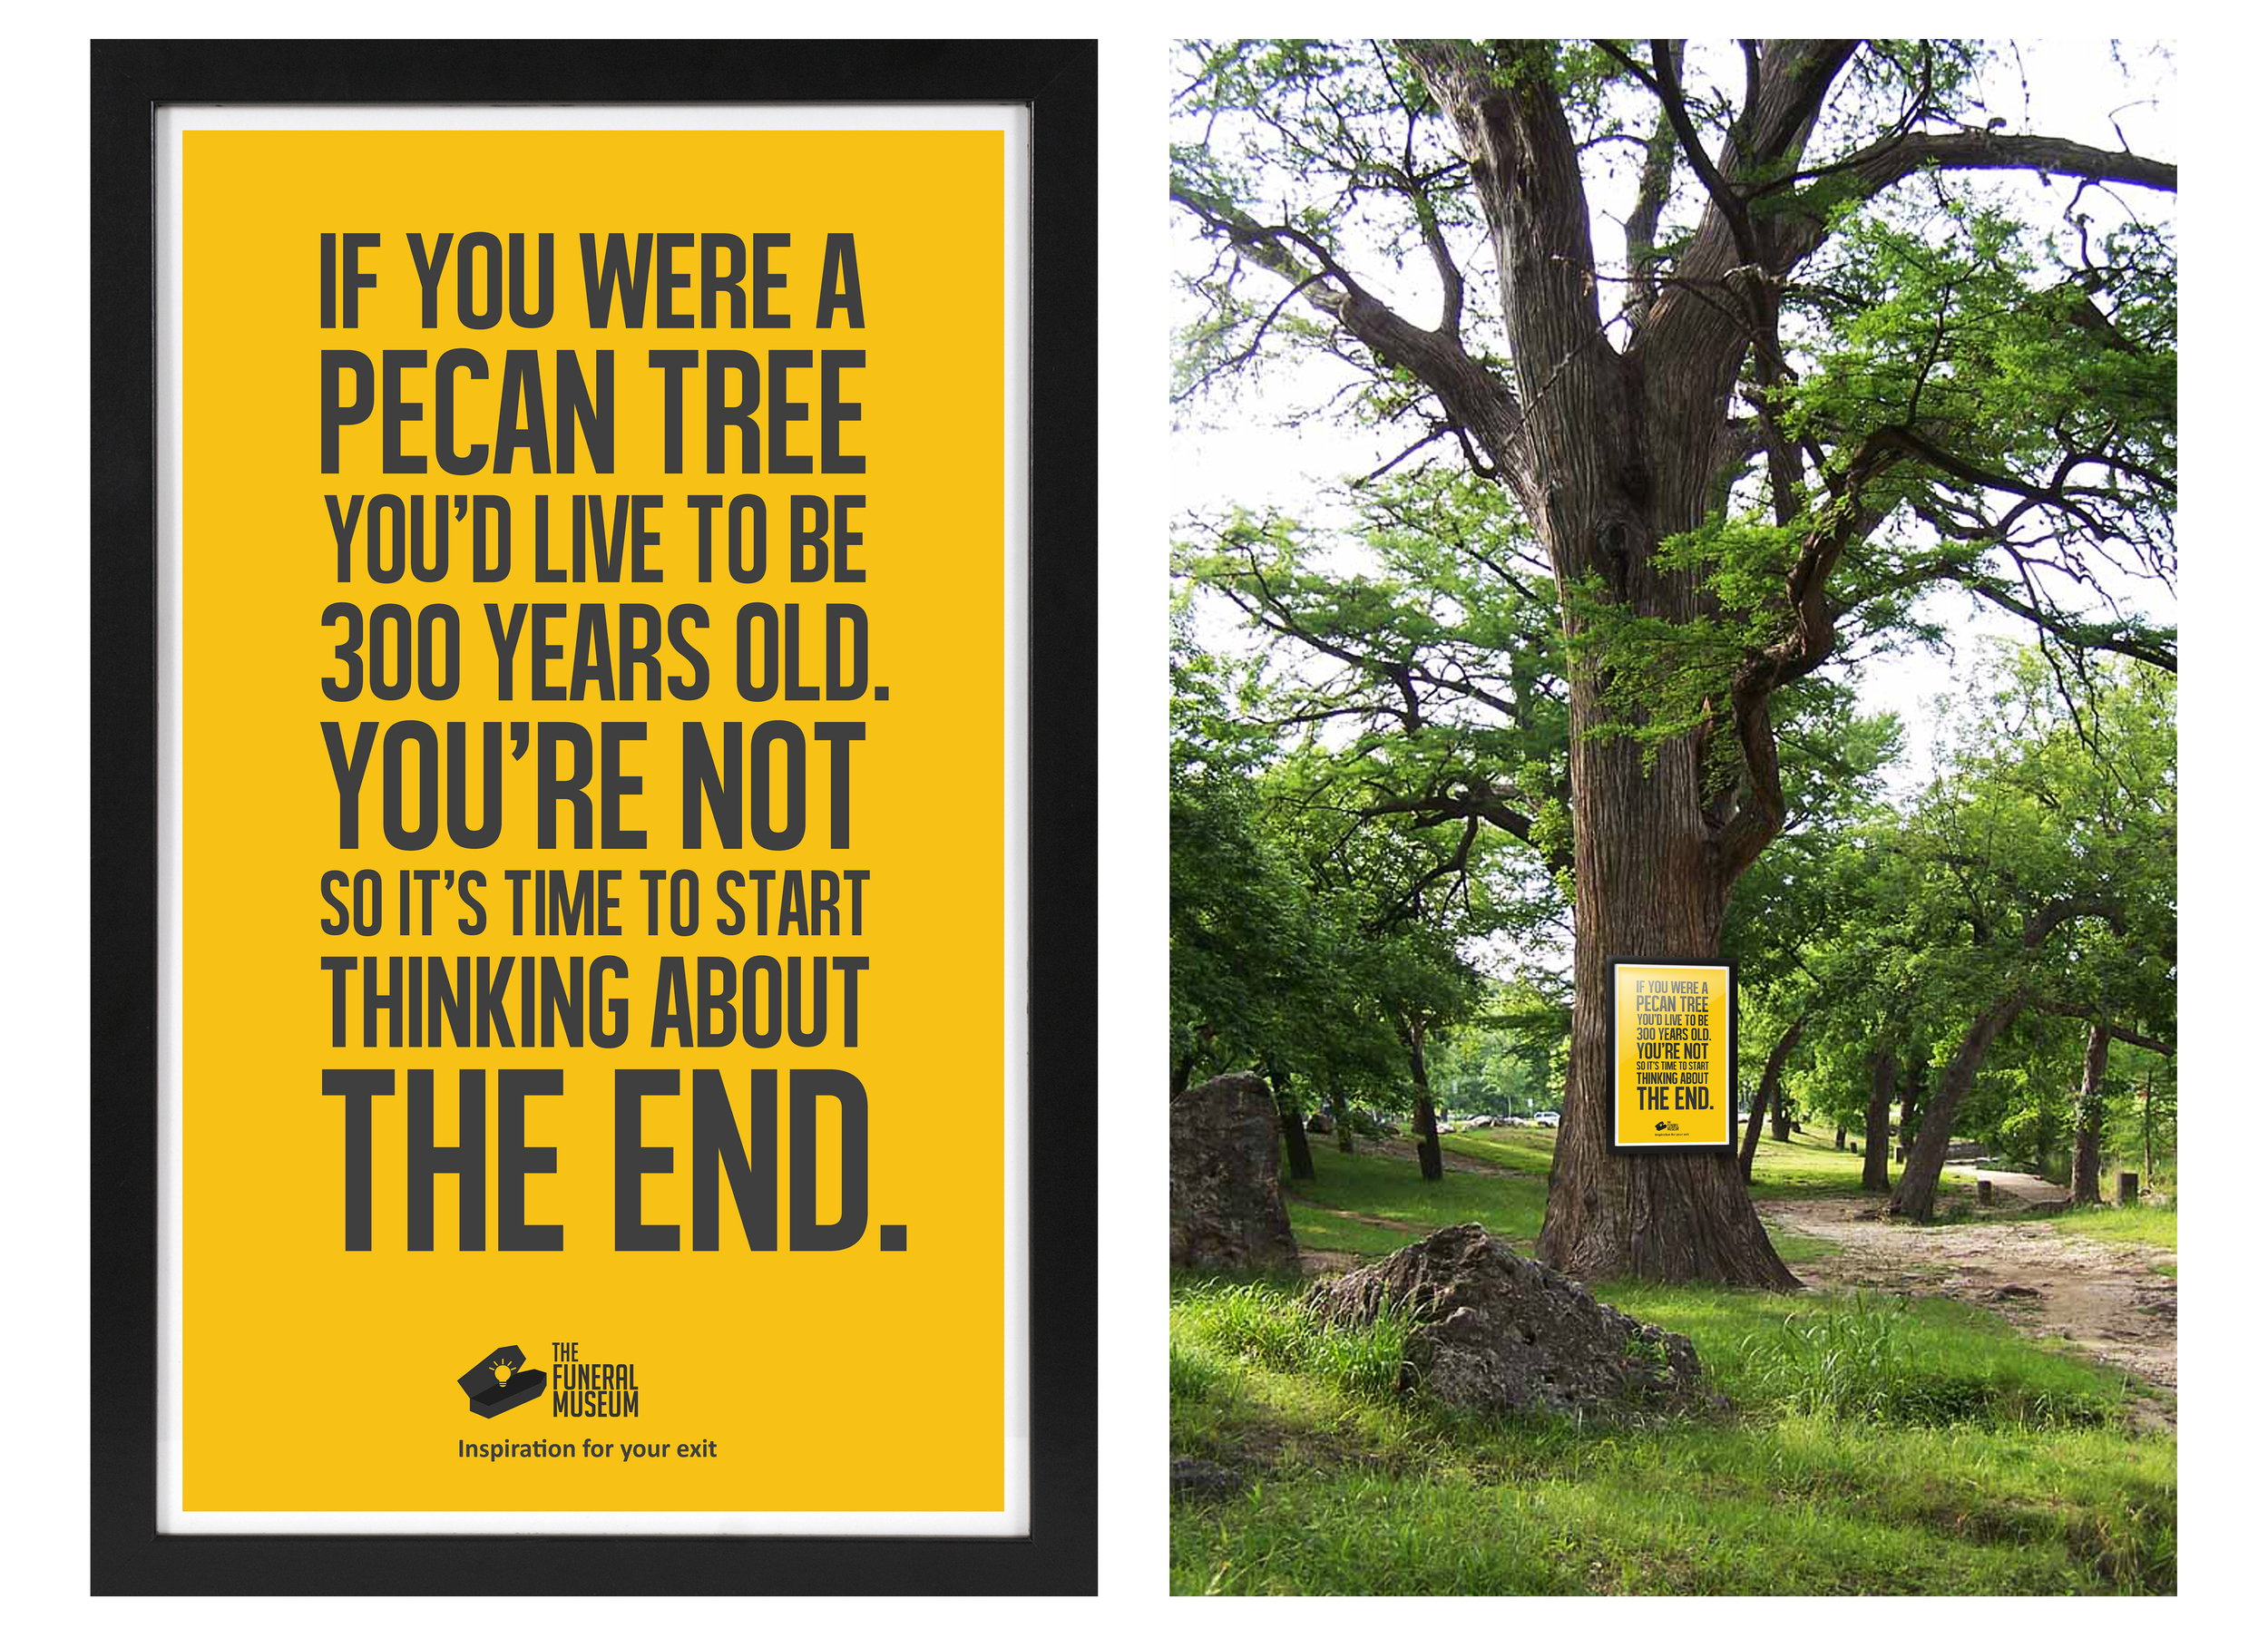 These print ads will be put in a black frame and displayed in places accordingly.